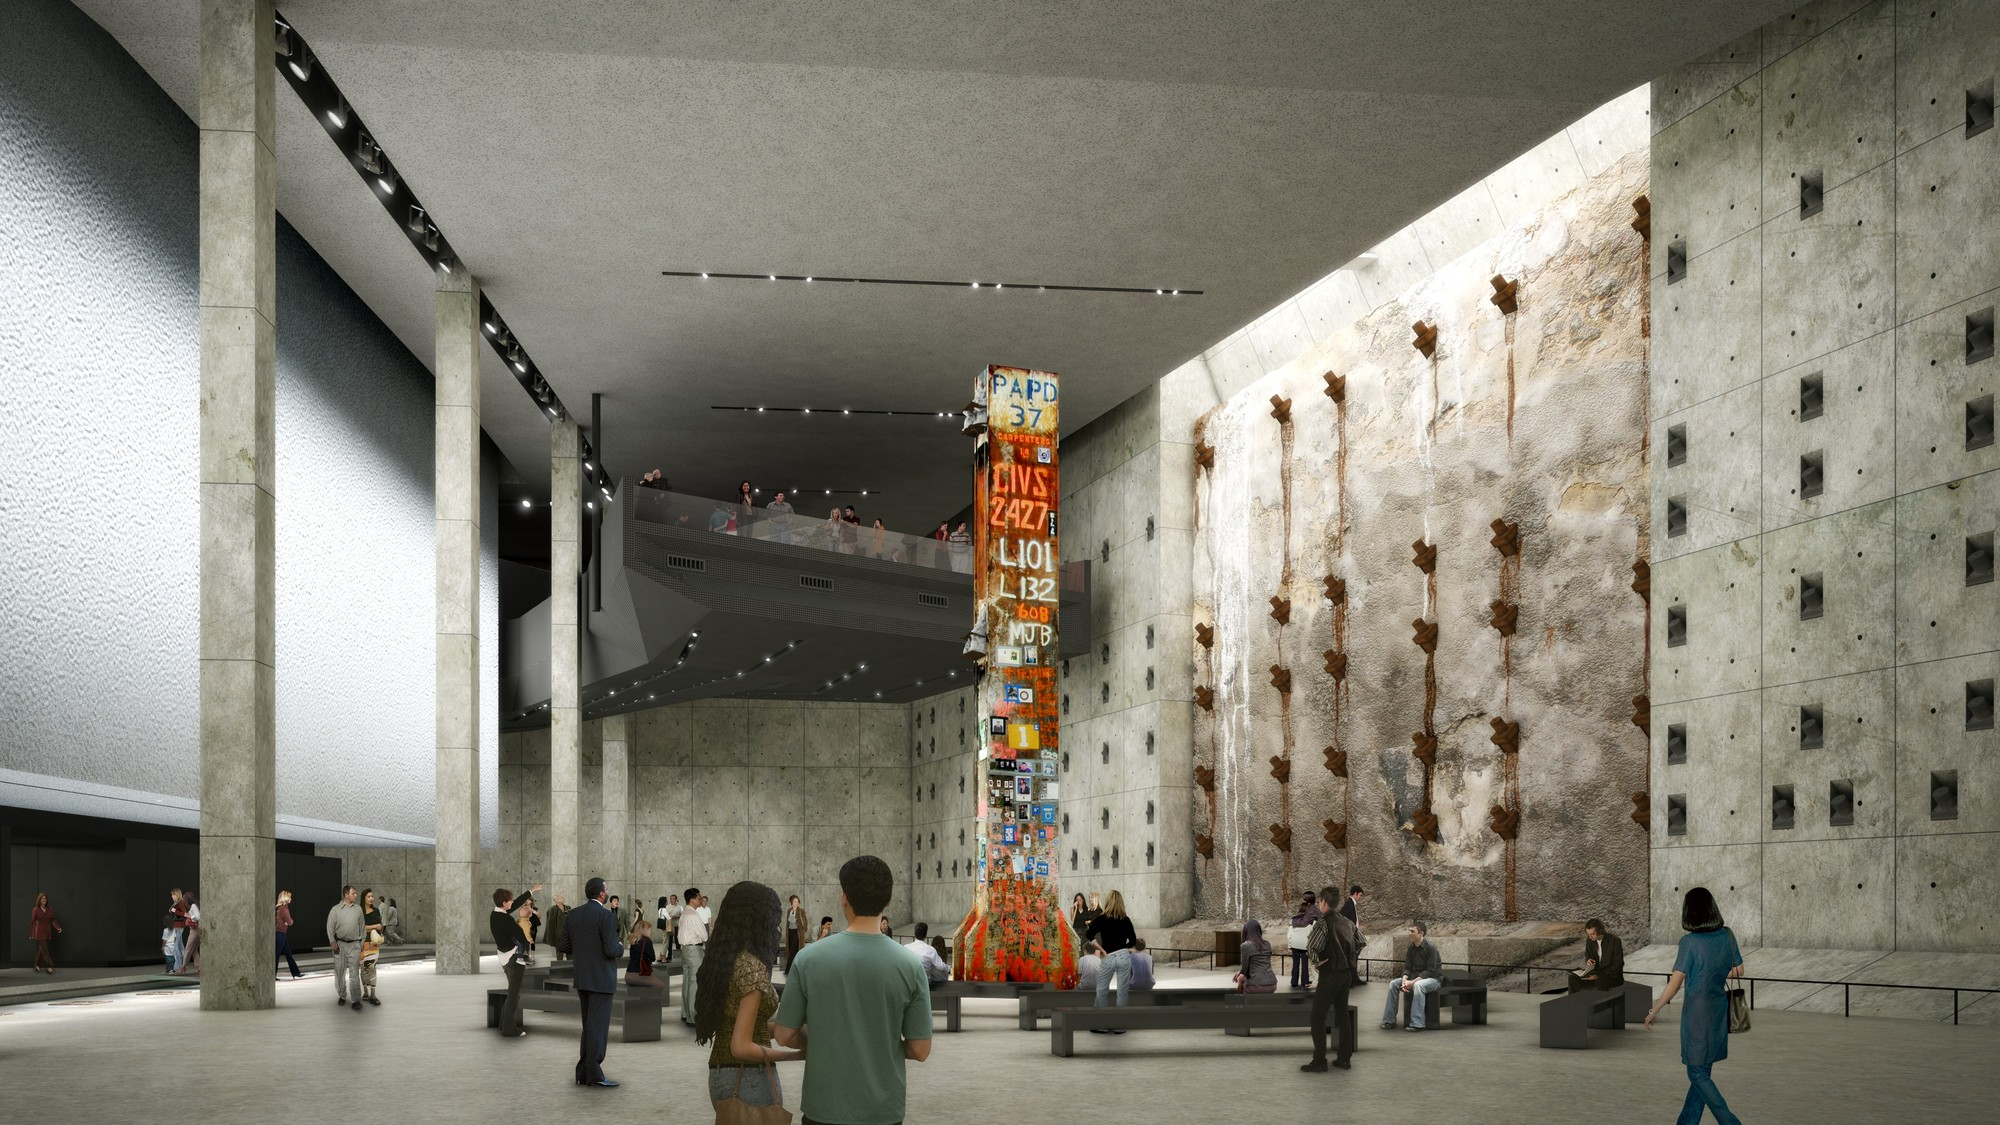 Davis brody bond releases new details of the 9 11 memorial for 9 square architecture